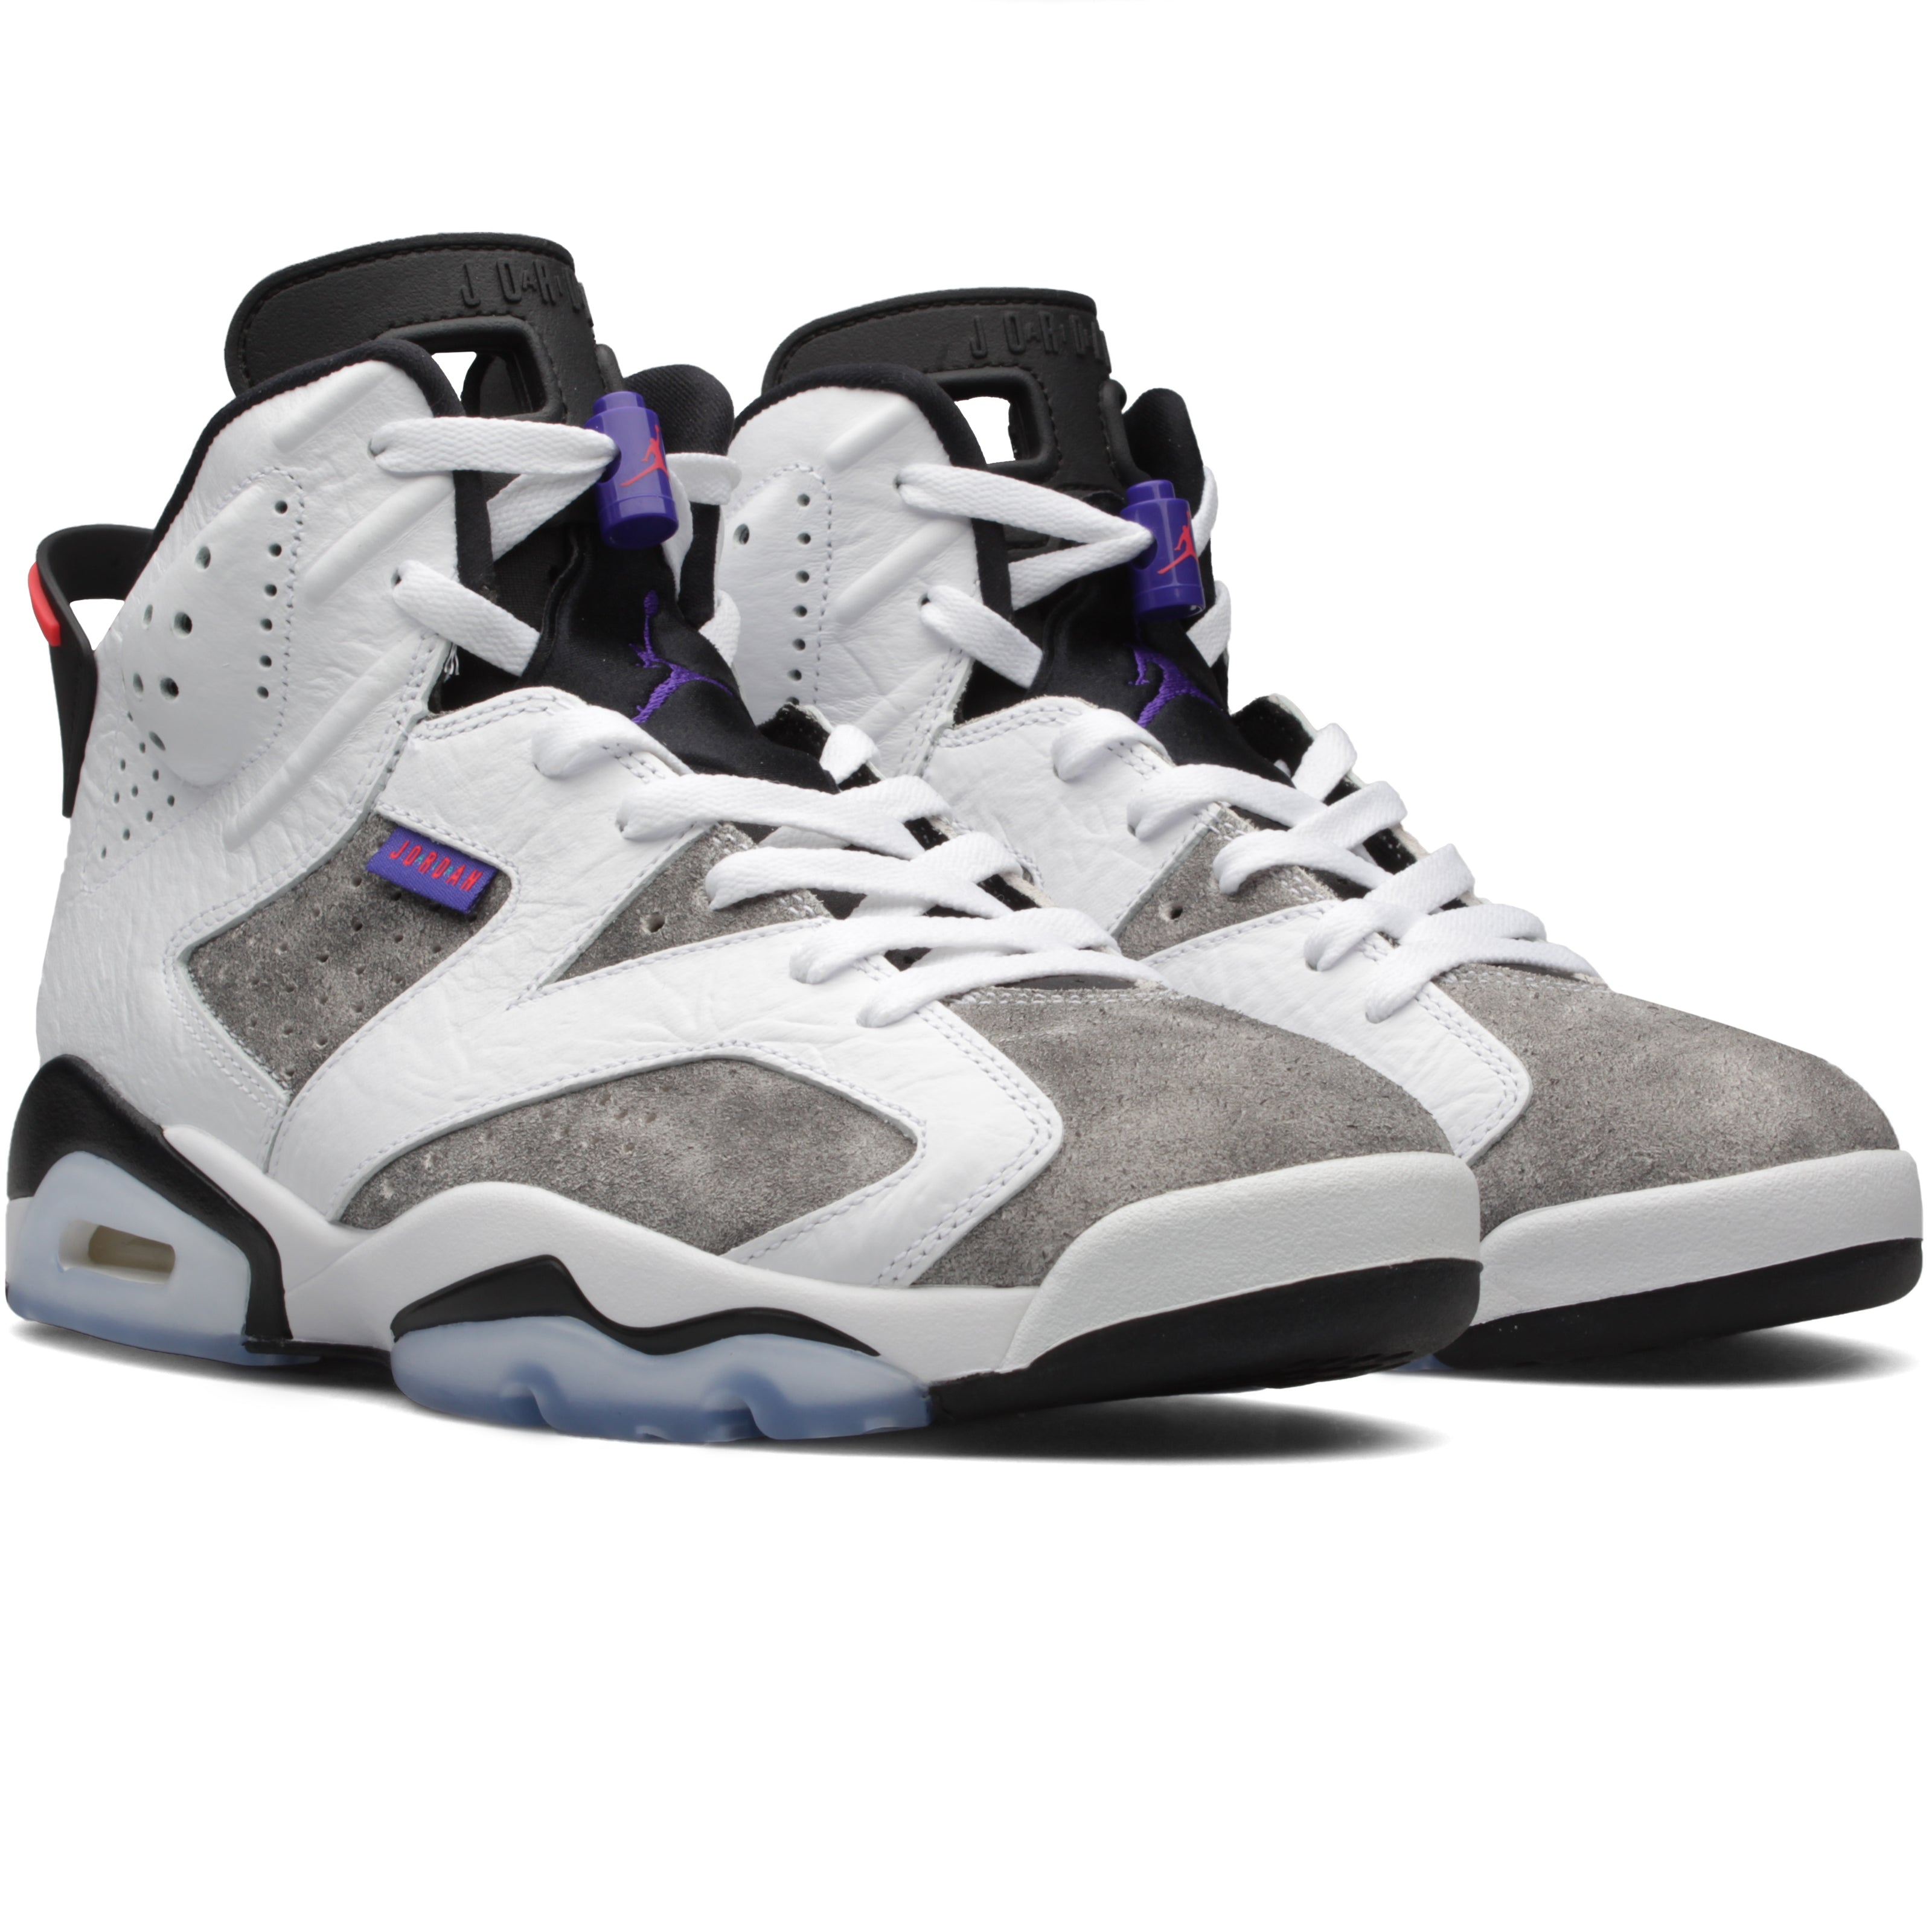 43e5cacc34a Air Jordan 6 Retro LTR